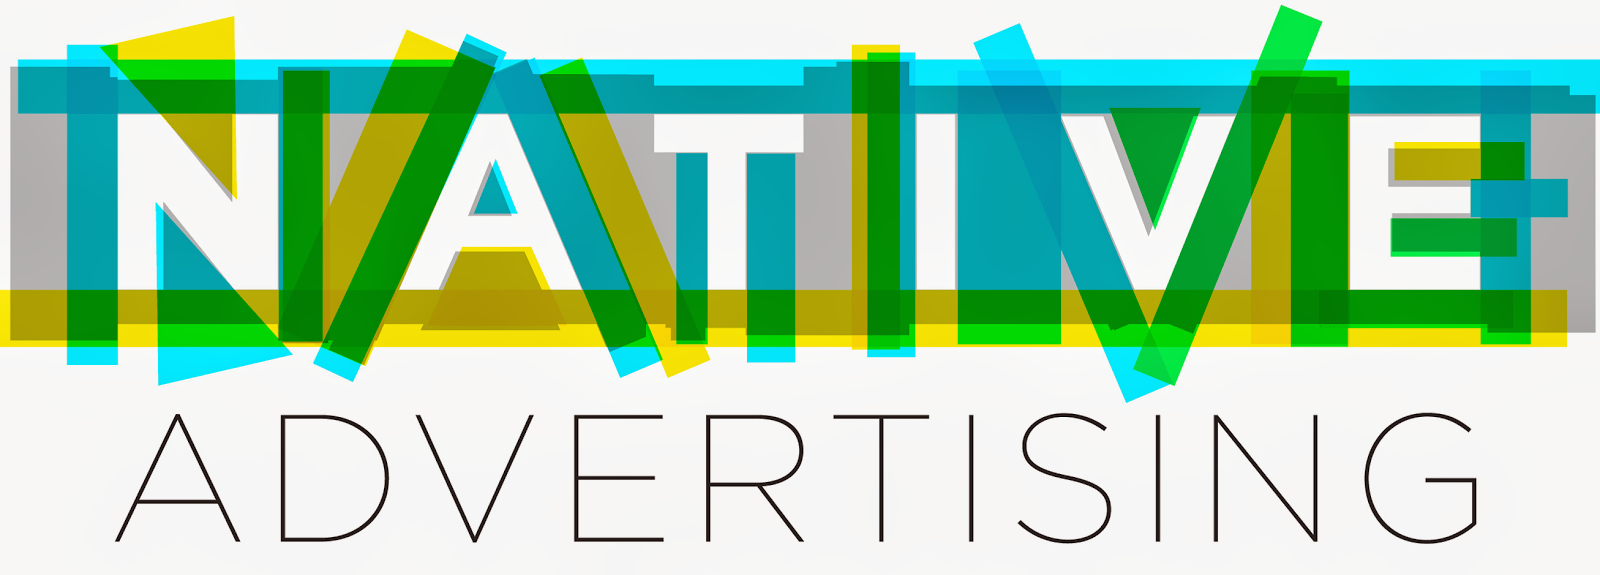 Native Advertising – The Story So Far.... http://goo.gl/Yoavub via #Pallab_BlogSpot on #NativeAds // #go_native